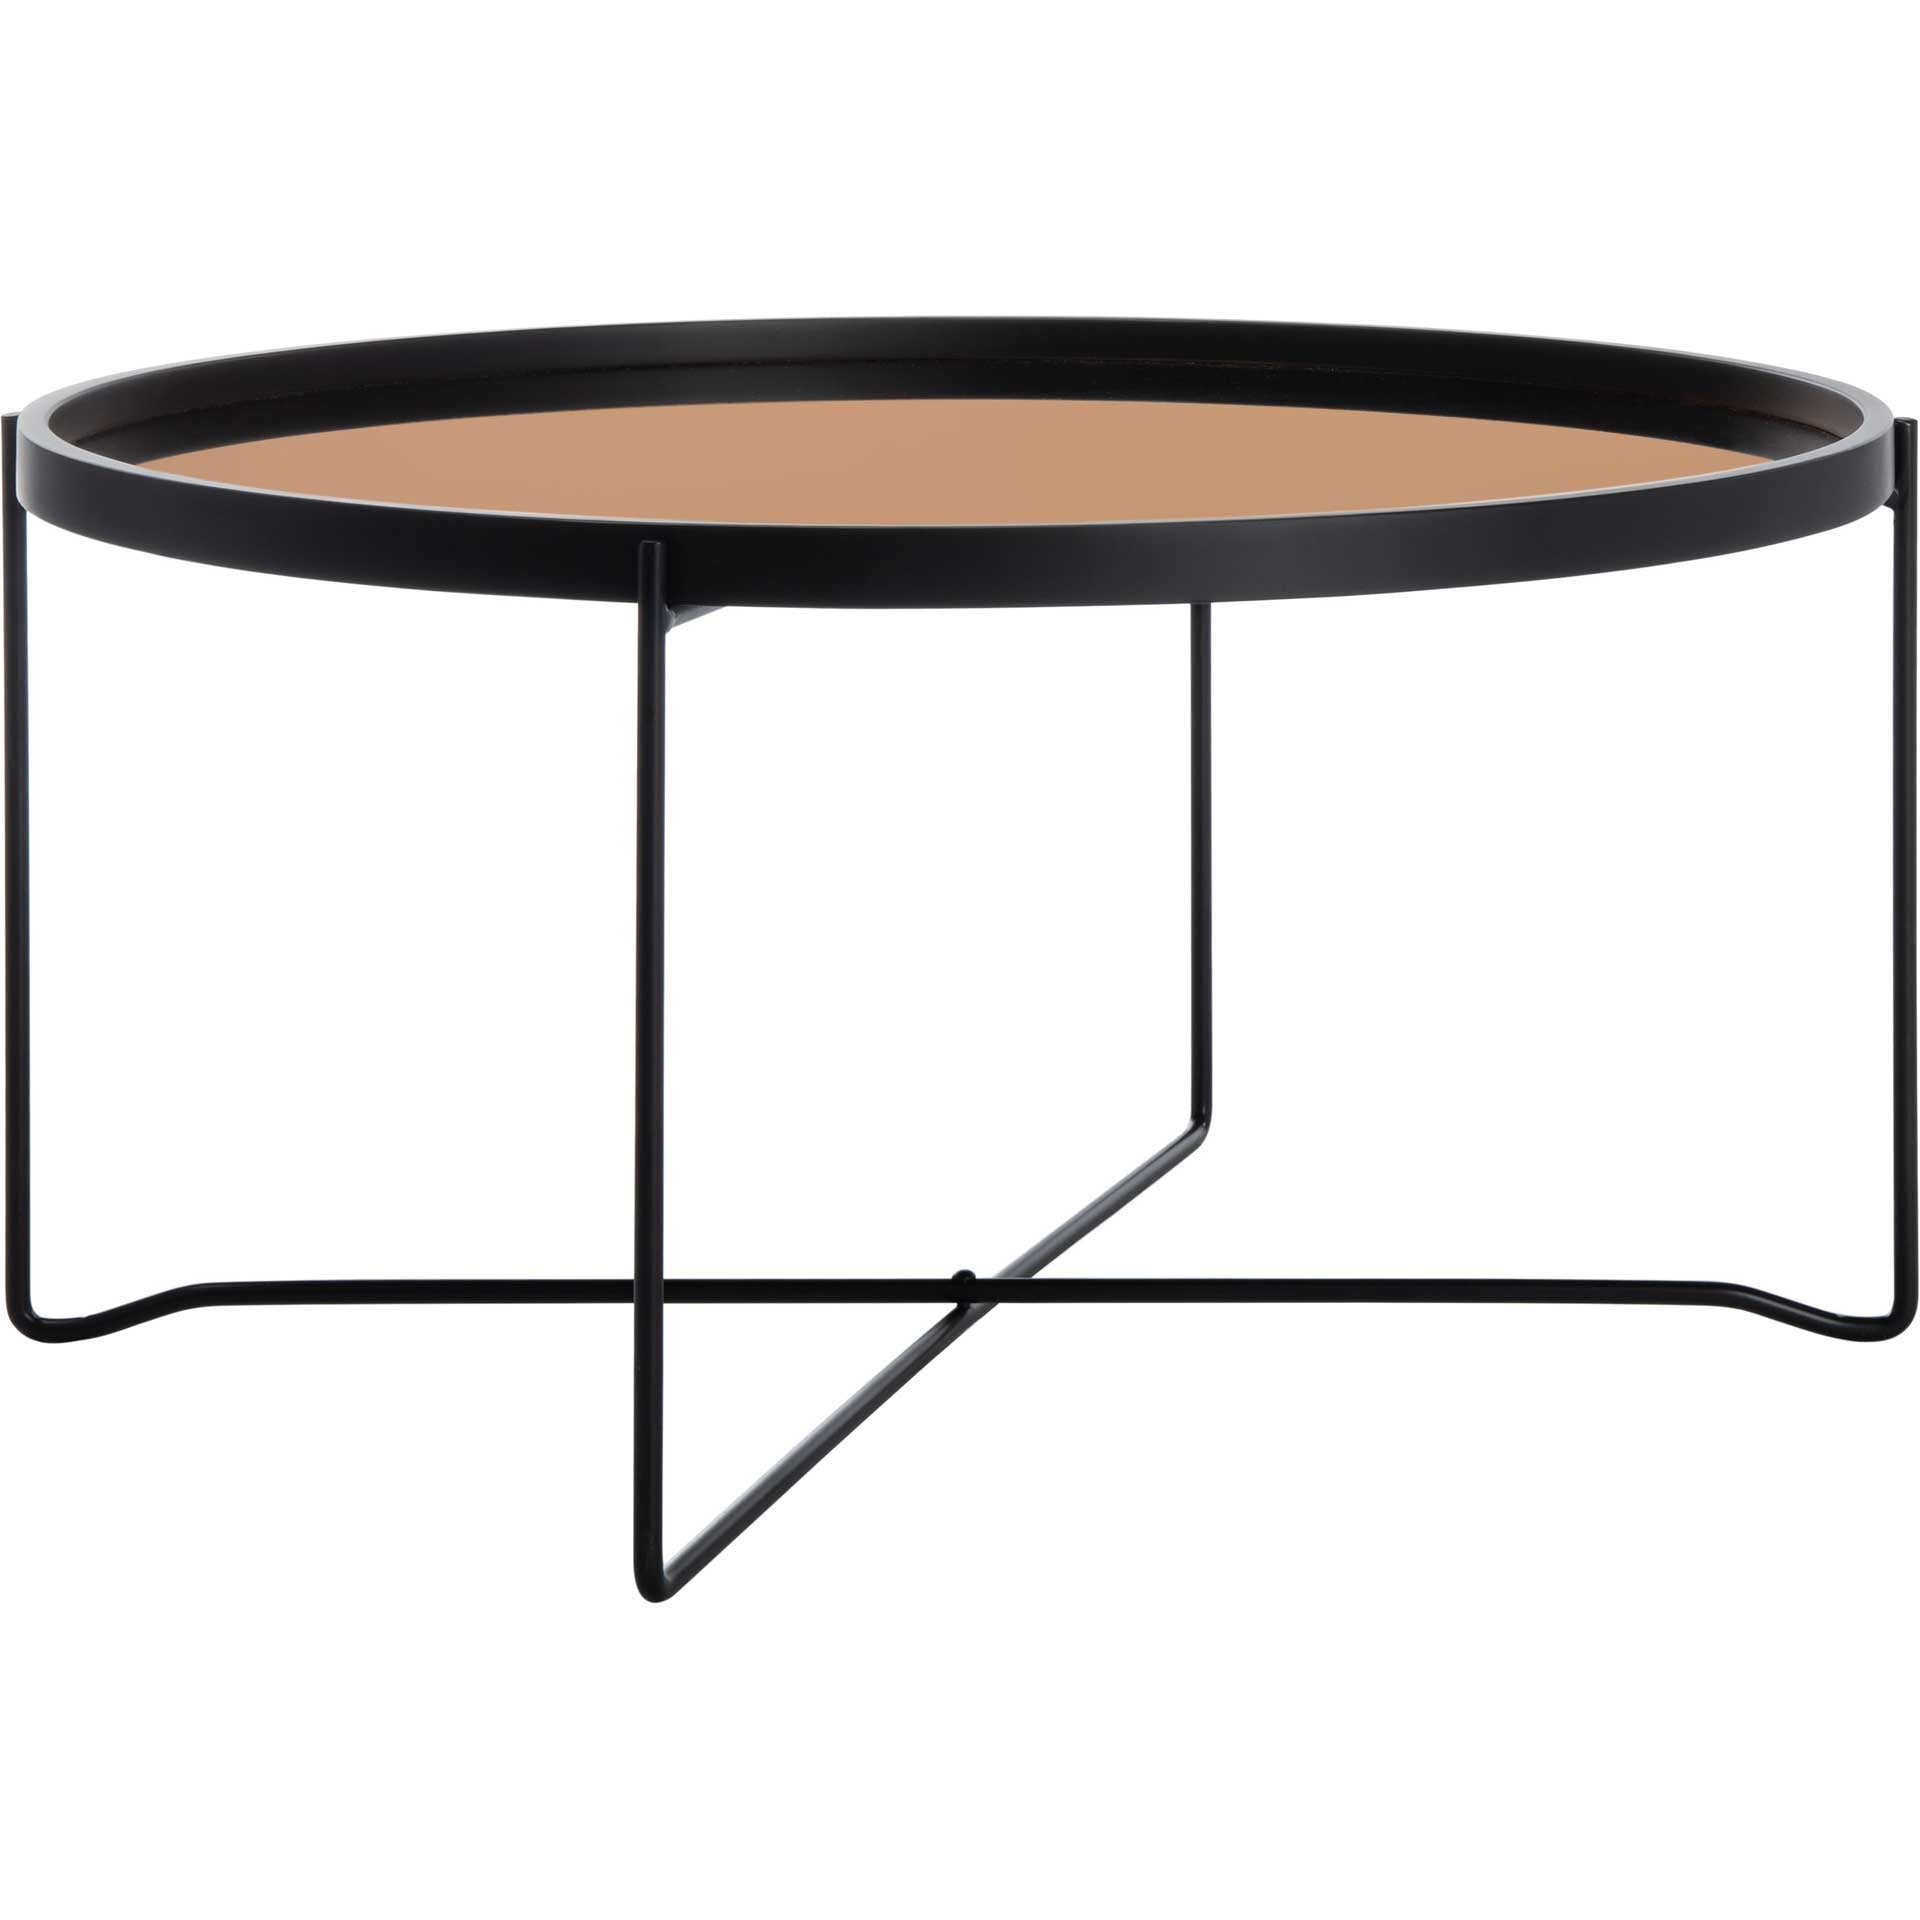 Rubicon Round Tray Top Coffee Table Rose Gold/Black